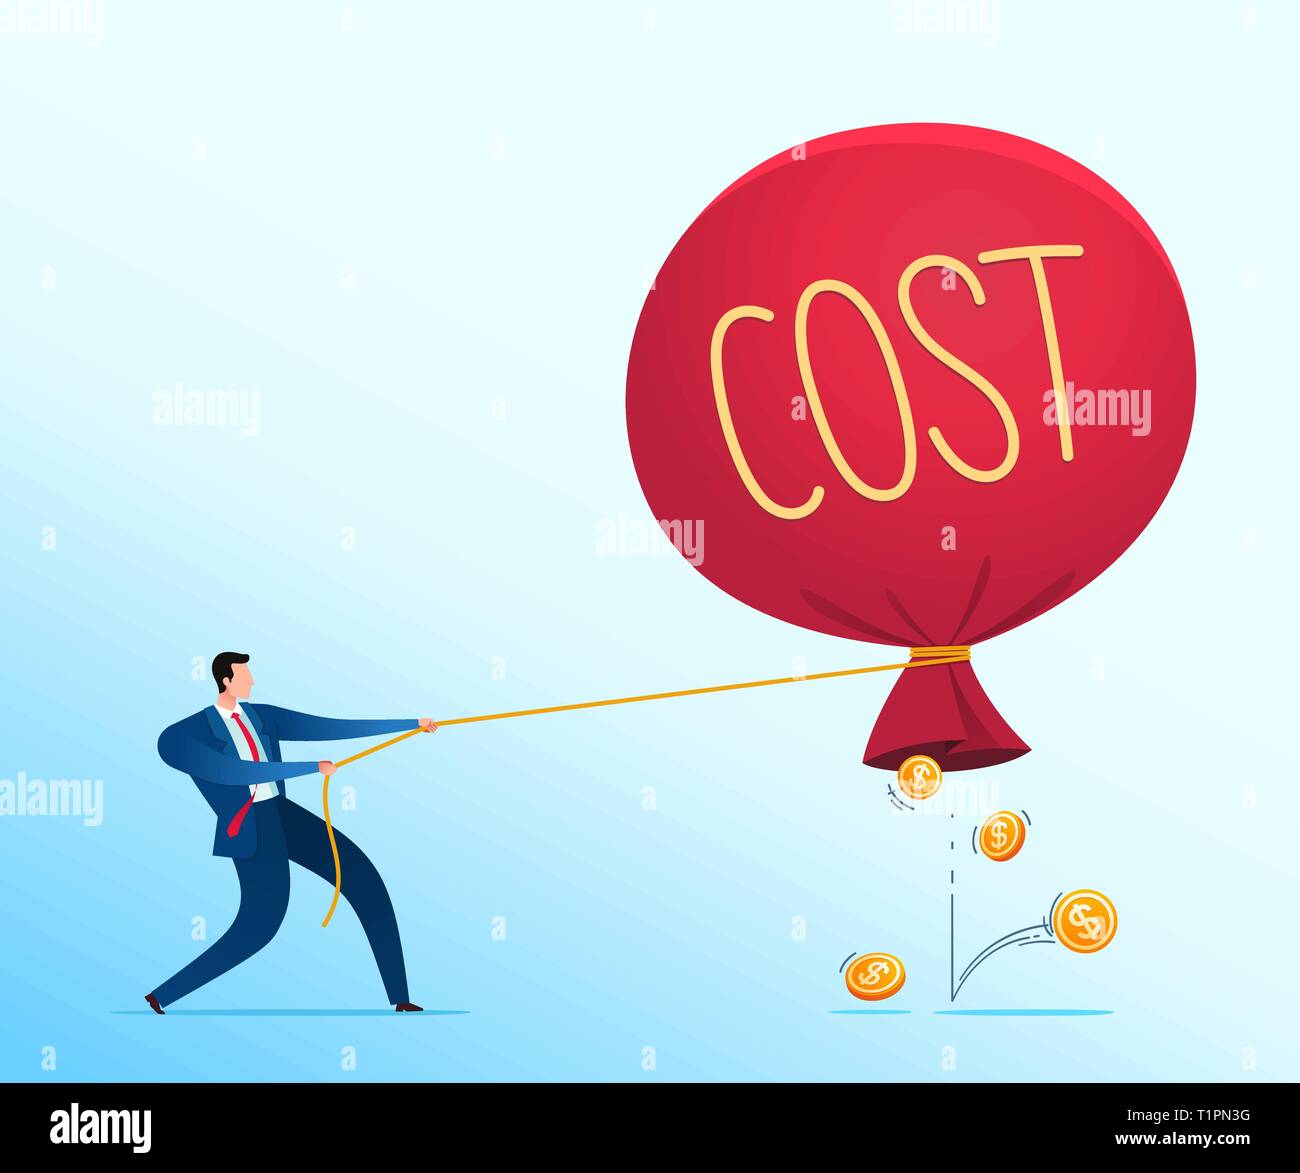 Businessman's strategy to prevent business loss. Business concept vector illustration. Stock Vector